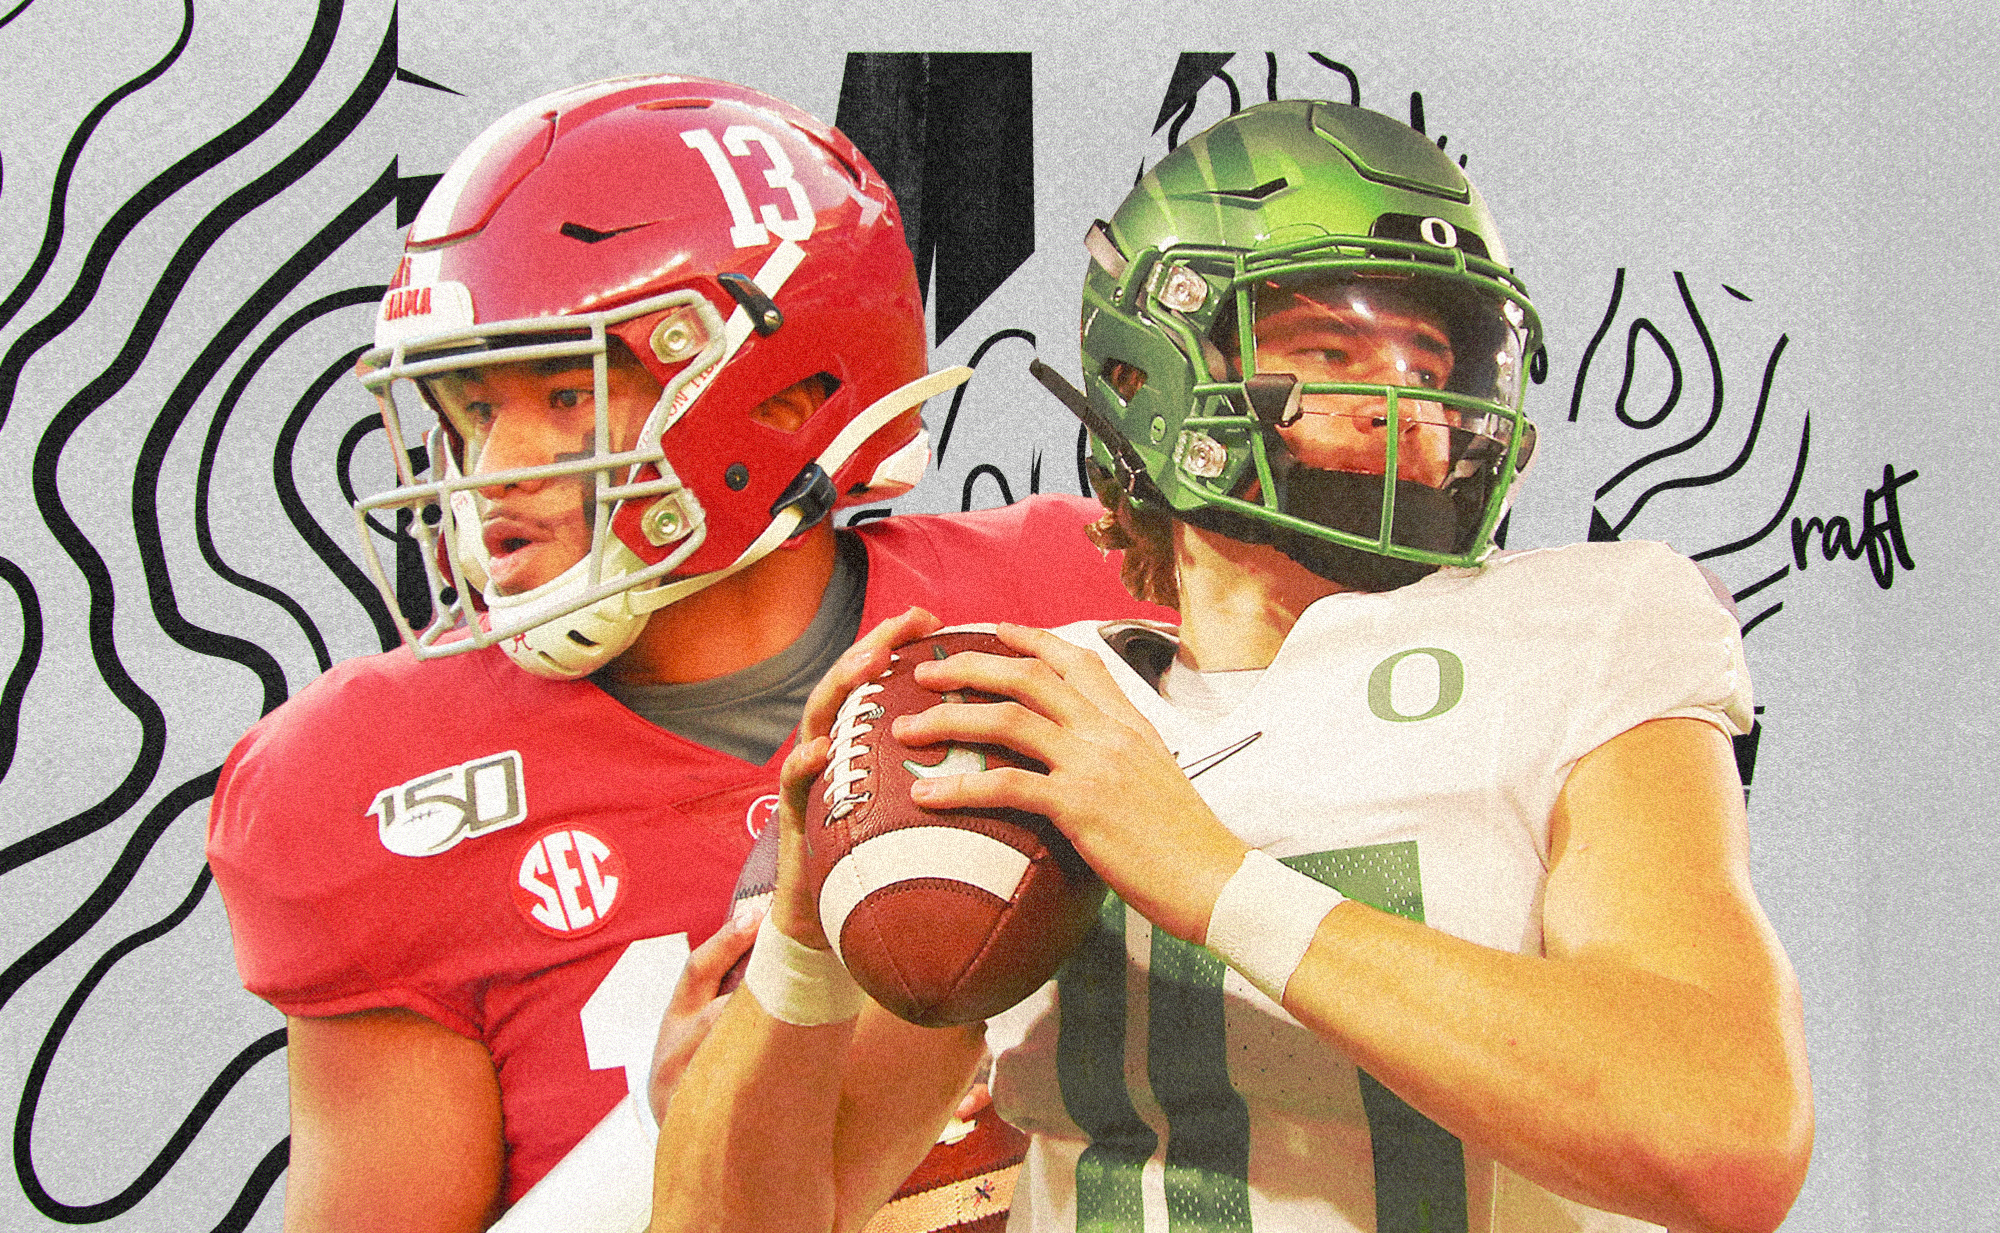 An art collage of NFL Draft QBs Tua Tagovailoa and Justin Herbert, superimposed on a white background with black squiggly lines